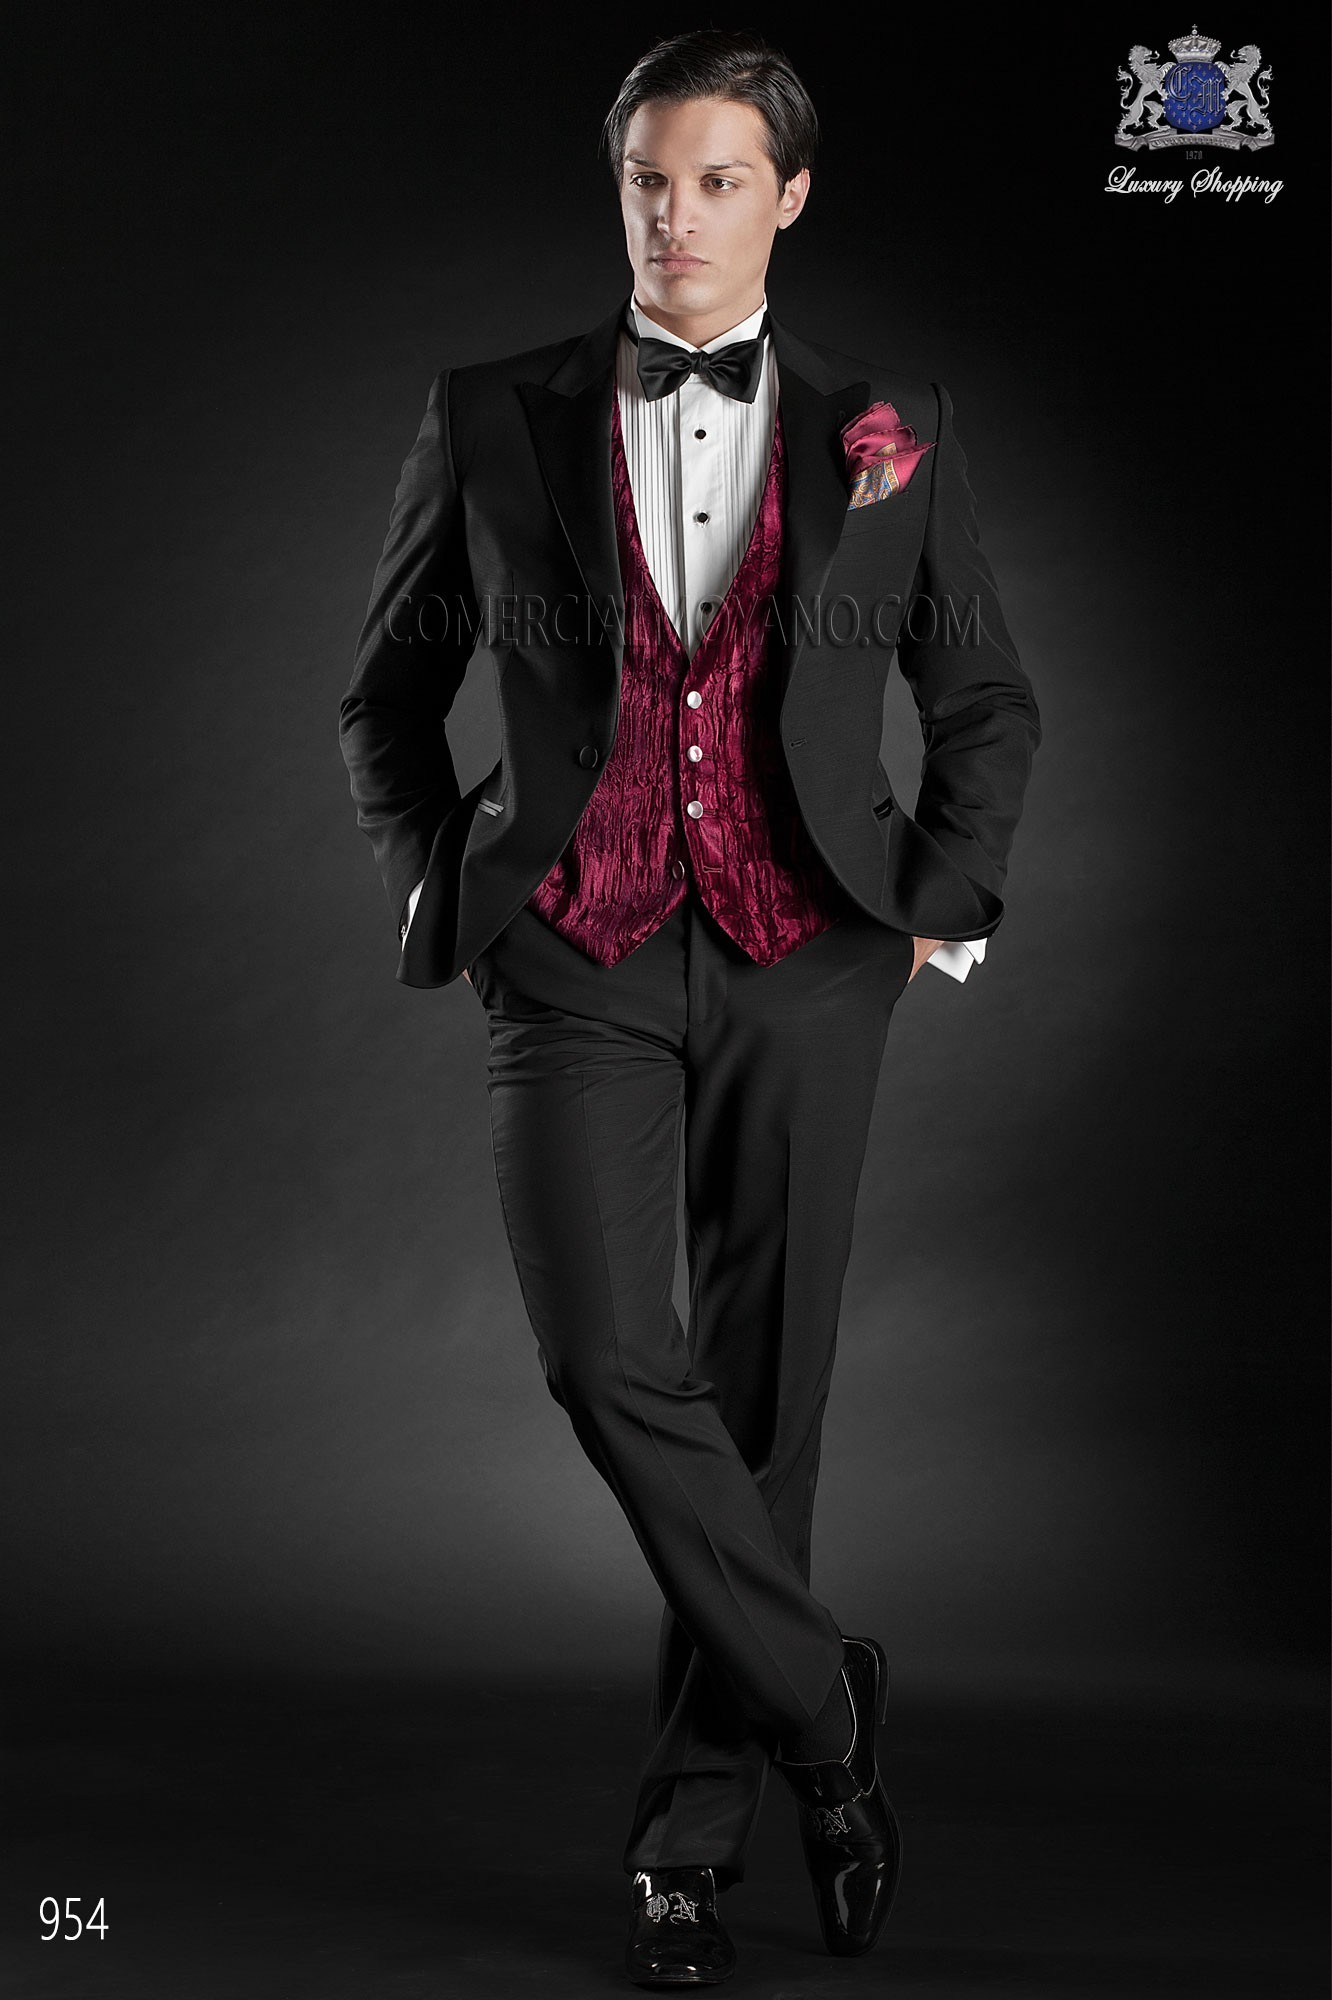 Black Tie black men wedding suit model 954 Ottavio Nuccio Gala